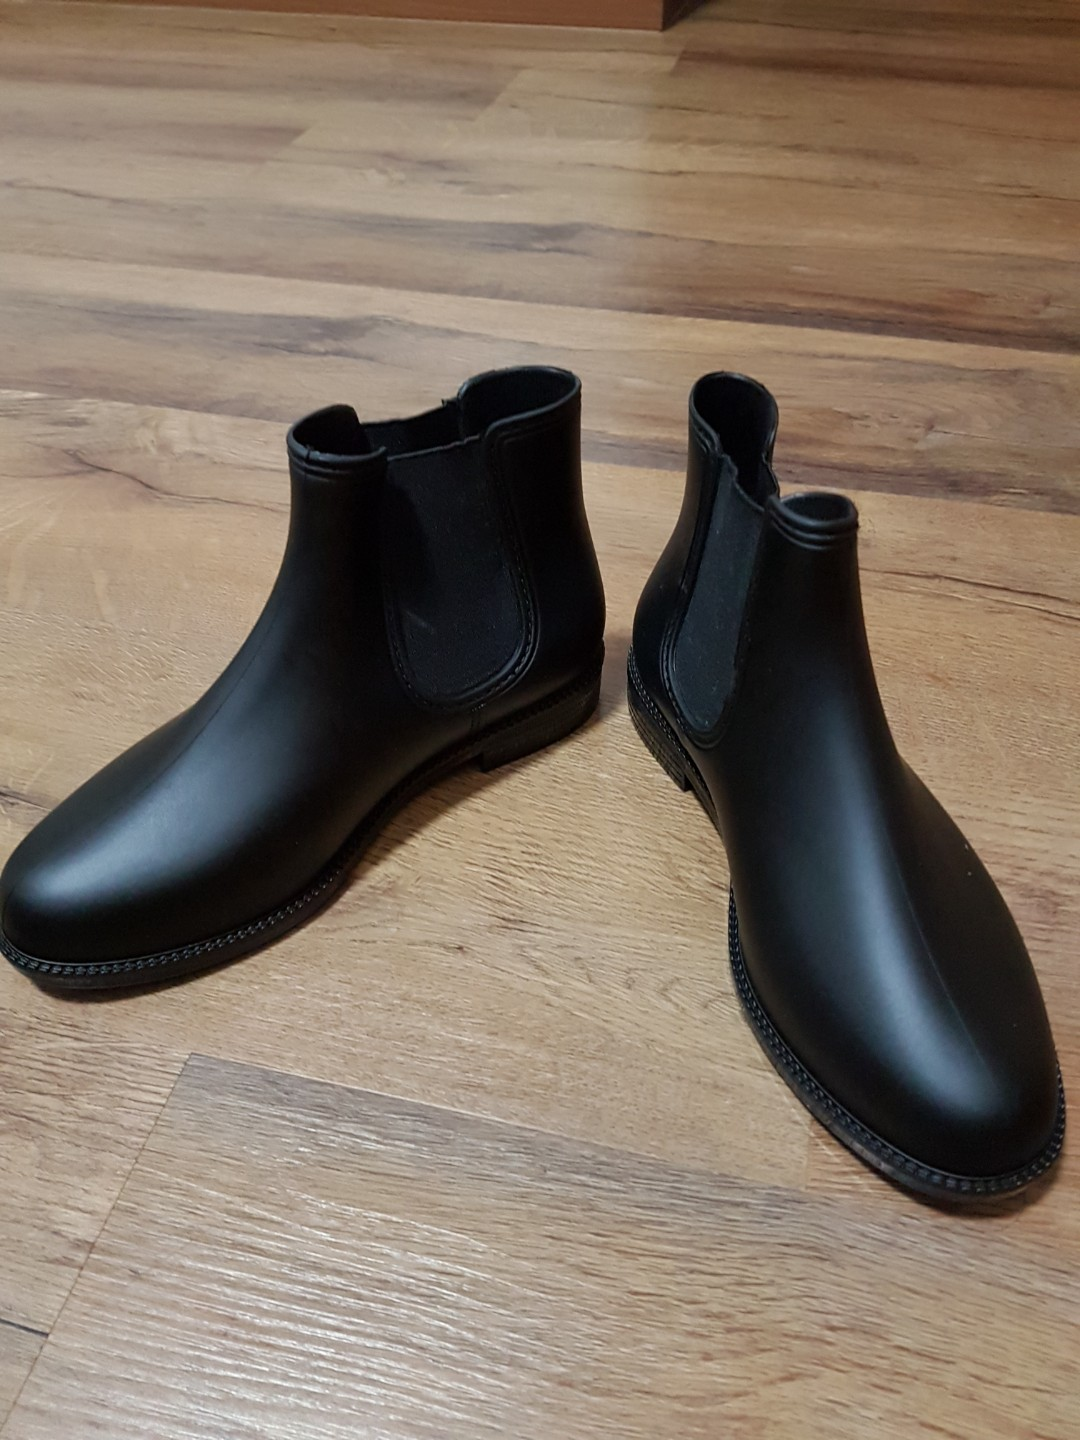 3236896e176 Ladies boots, Women's Fashion, Shoes, Boots on Carousell